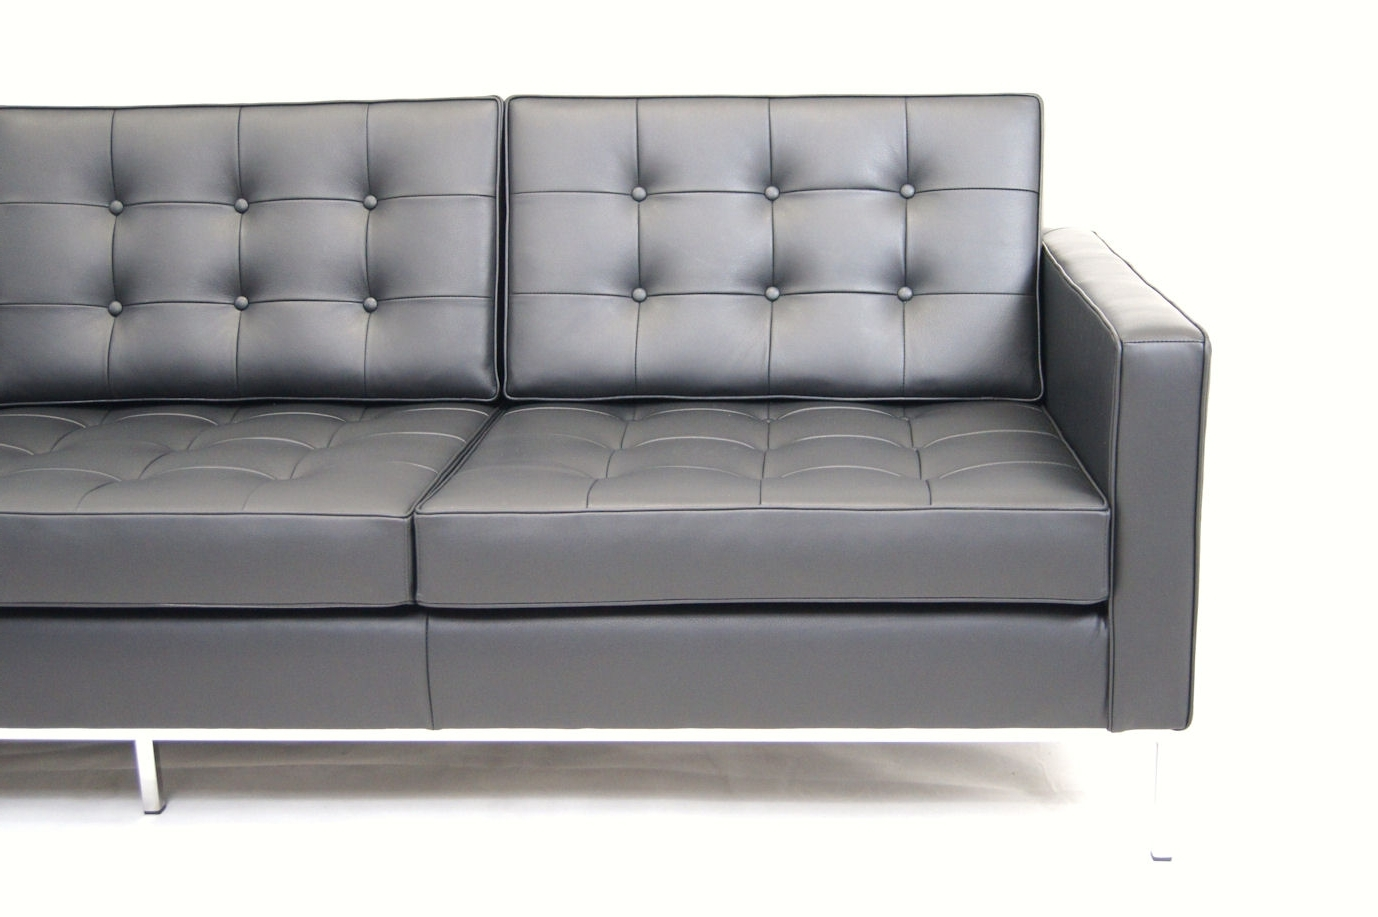 Well Liked Florence Knoll Sofa Canada « House Plans Ideas Throughout Florence Knoll Leather Sofas (View 5 of 20)